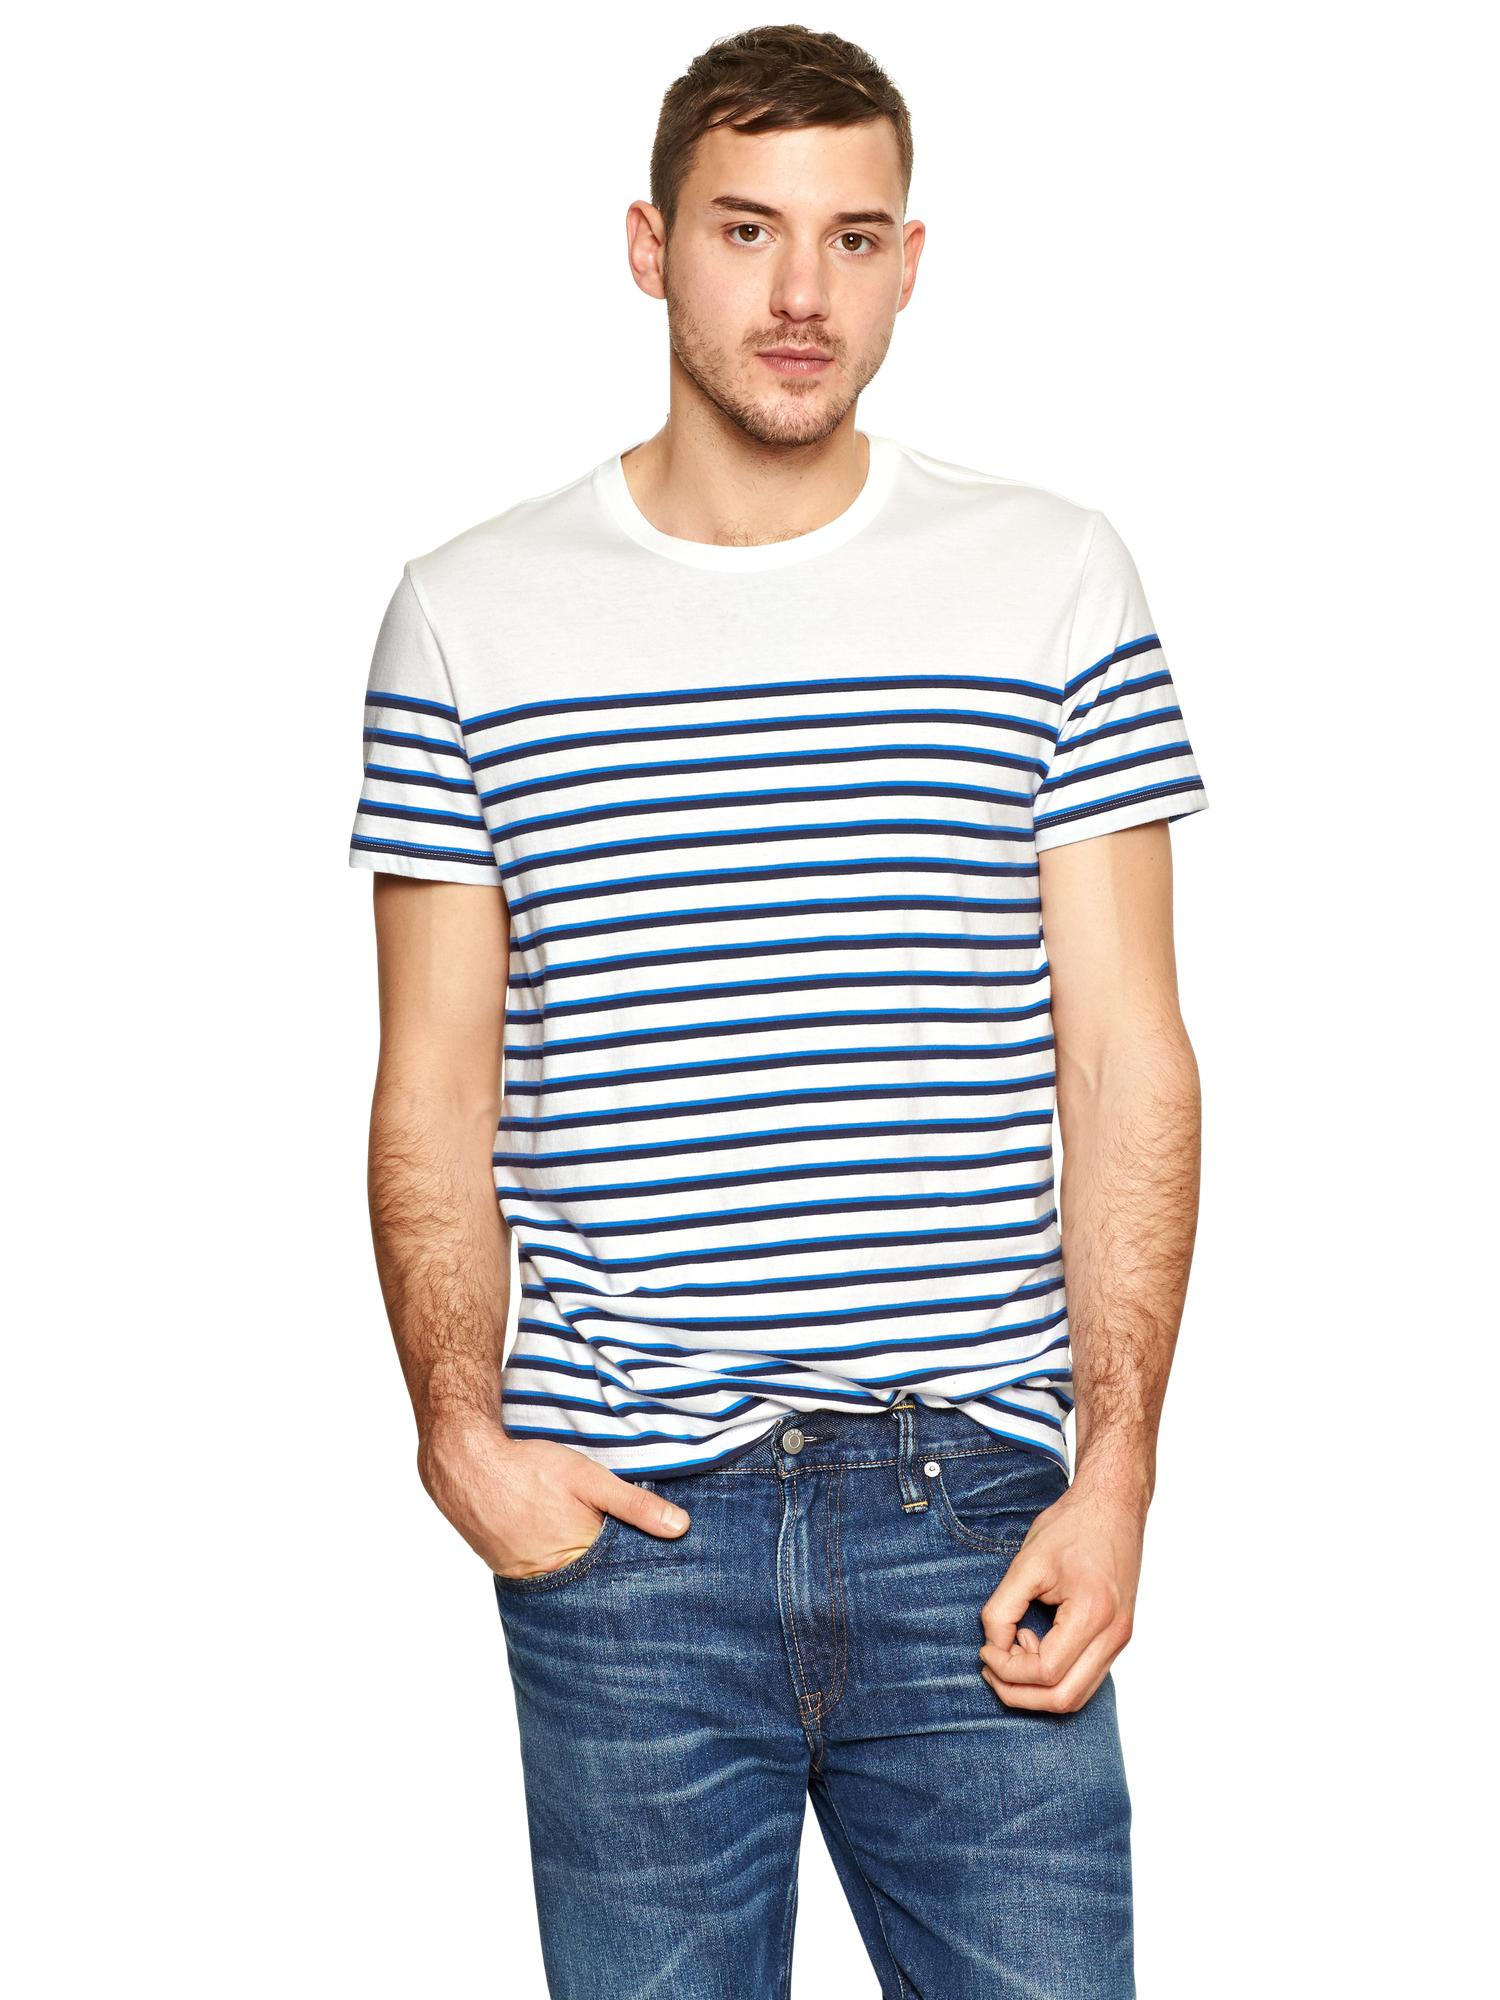 Gap essential striped t shirt in blue for men blue stripe for Blue striped shirt mens